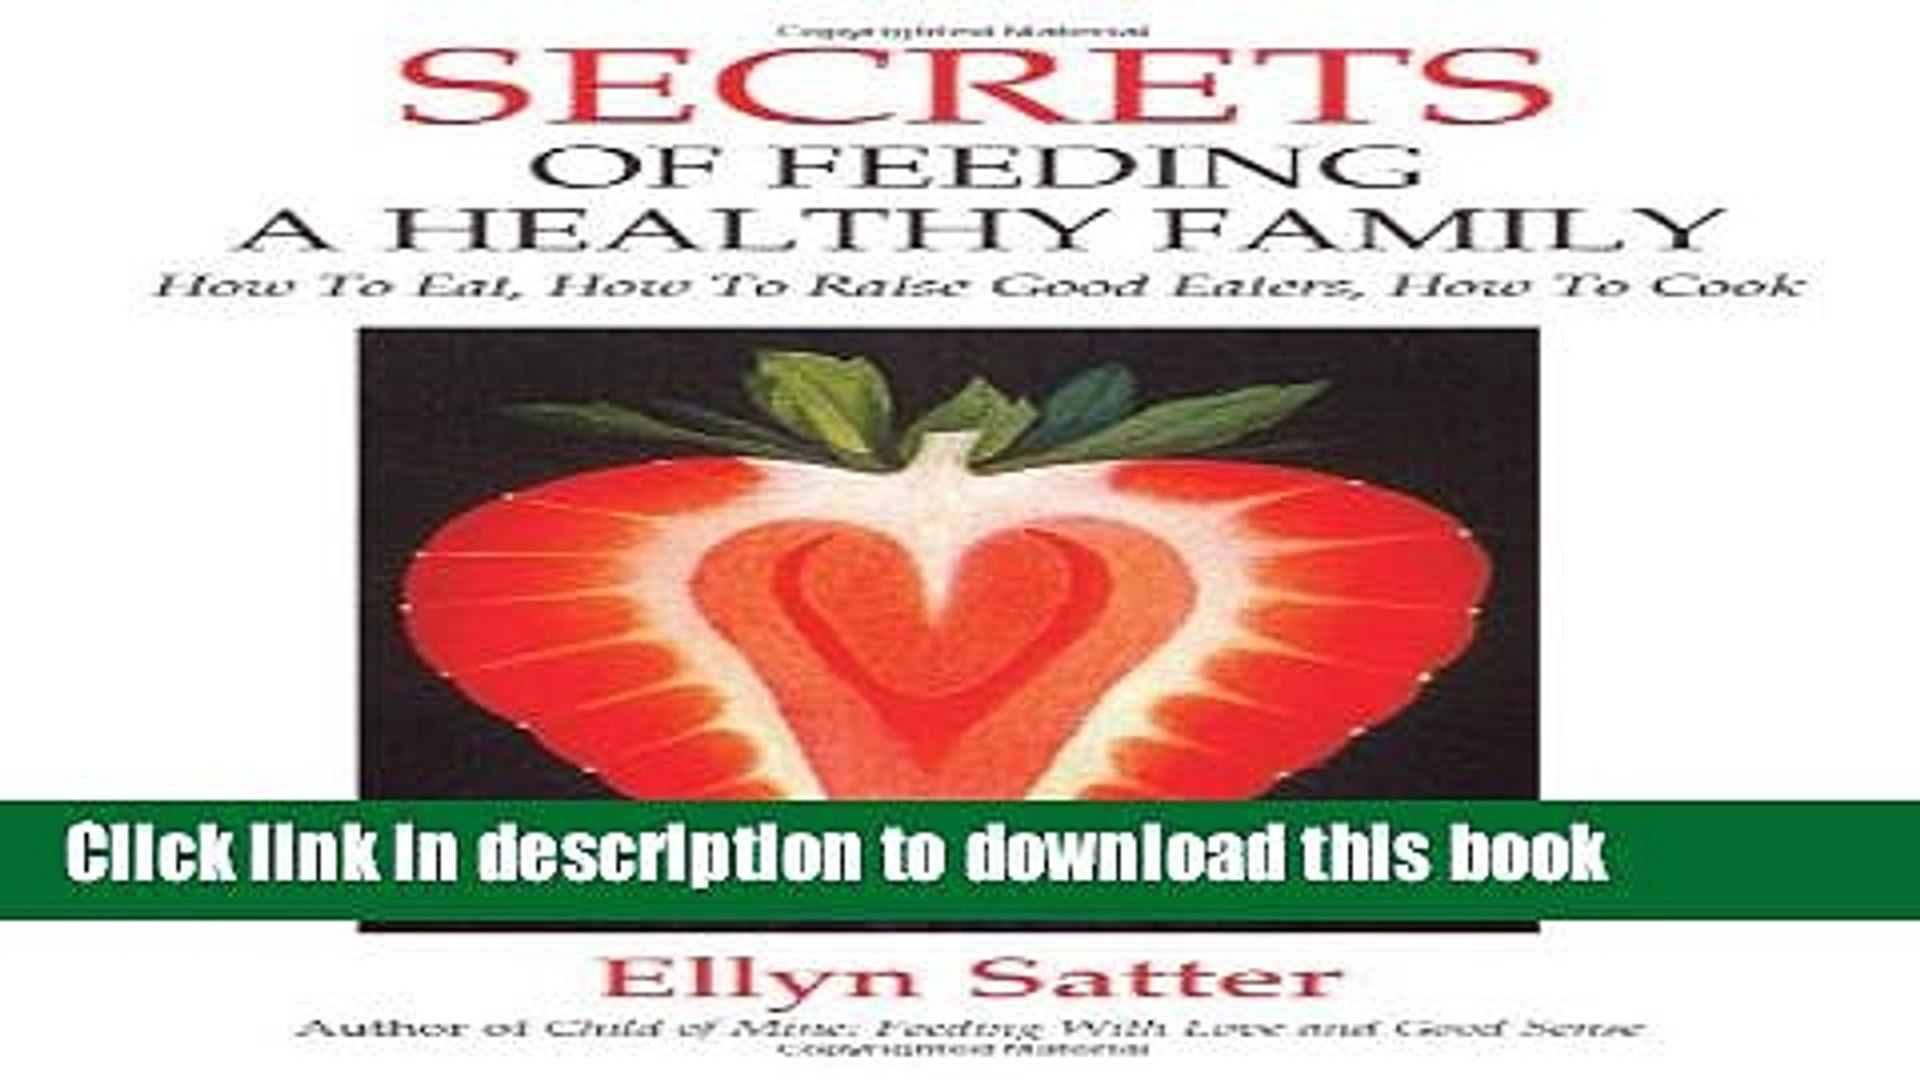 Ebook Secrets of Feeding a Healthy Family: How to Eat, How to Raise Good Eaters, How to Cook Full